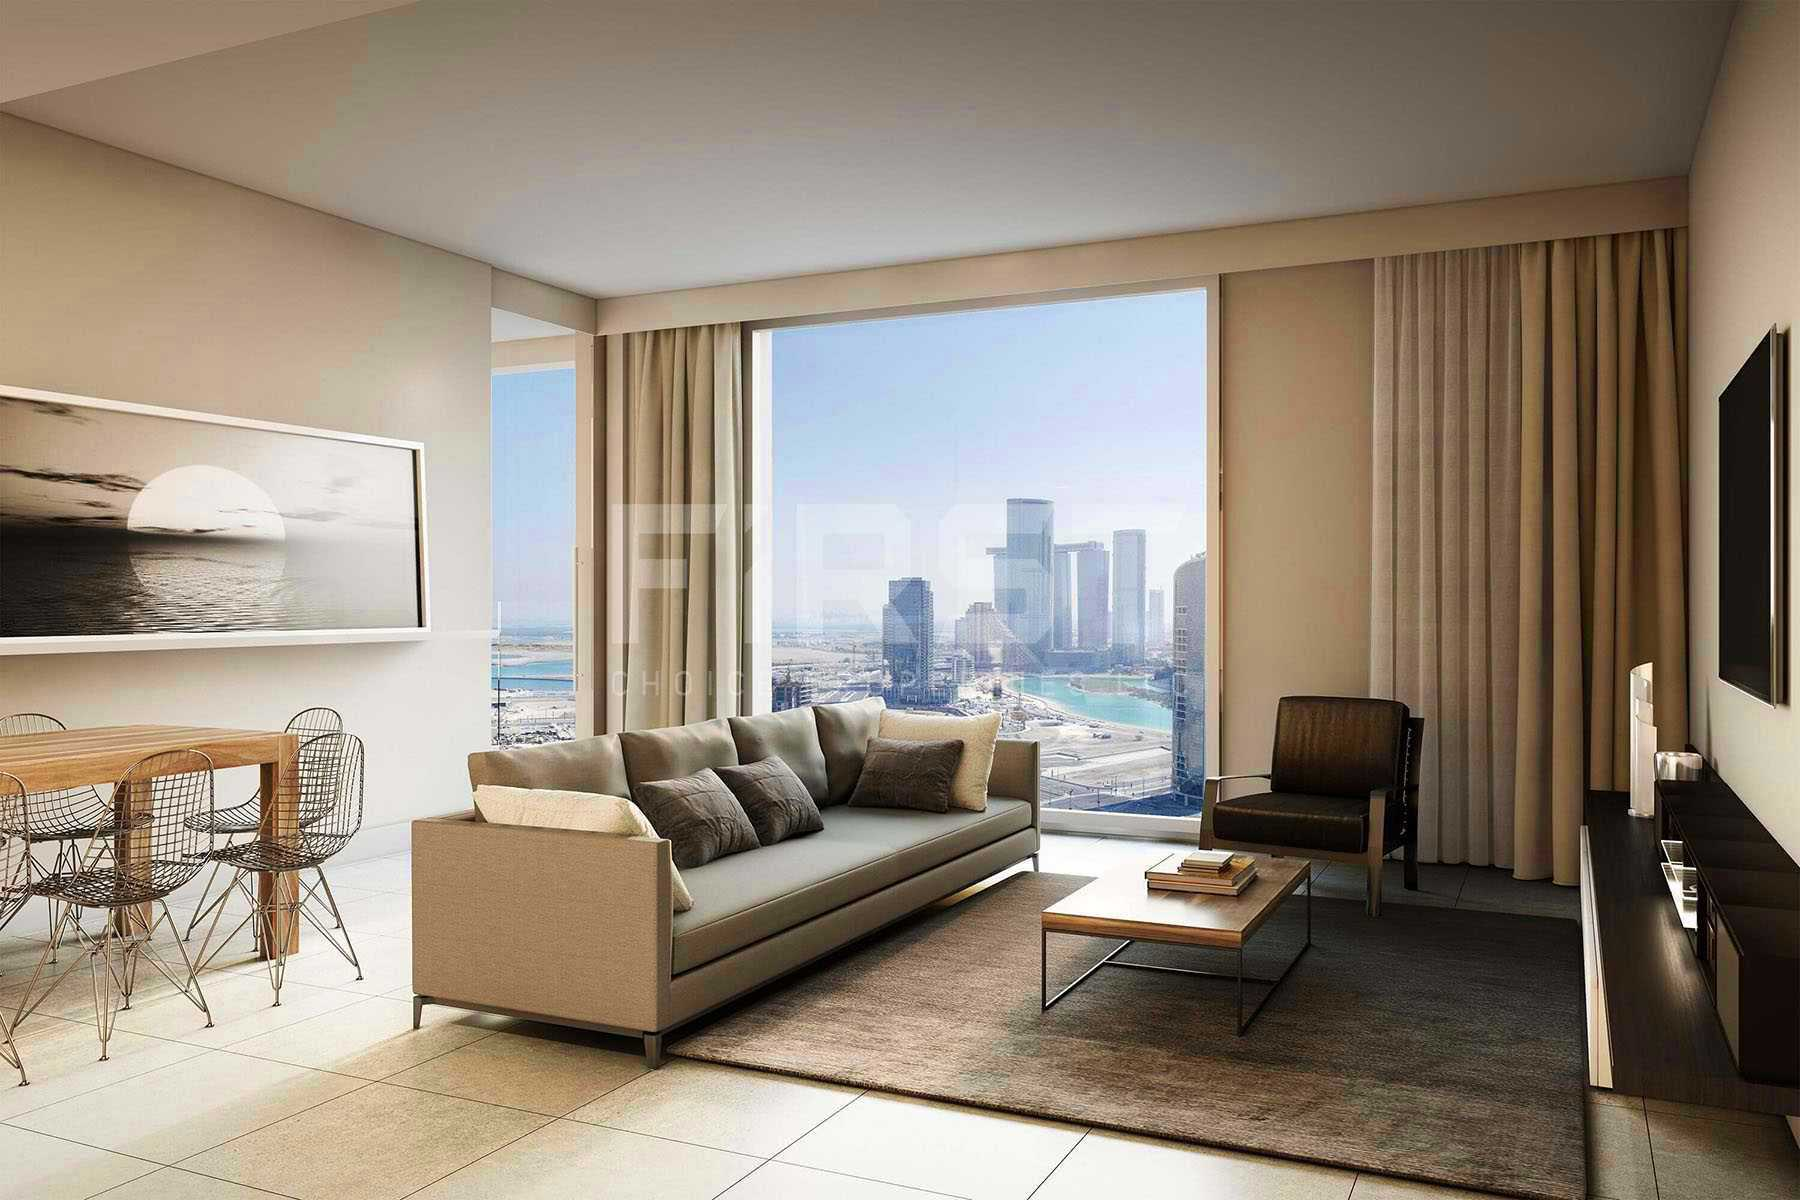 Studio,1 Bedroom, 2 Bedroom, 3 Bedroom,Apartment in The Bridges,Shams Abu Dhabi,Al Reem Island- Abu Dhabi-UAE (3).jpg